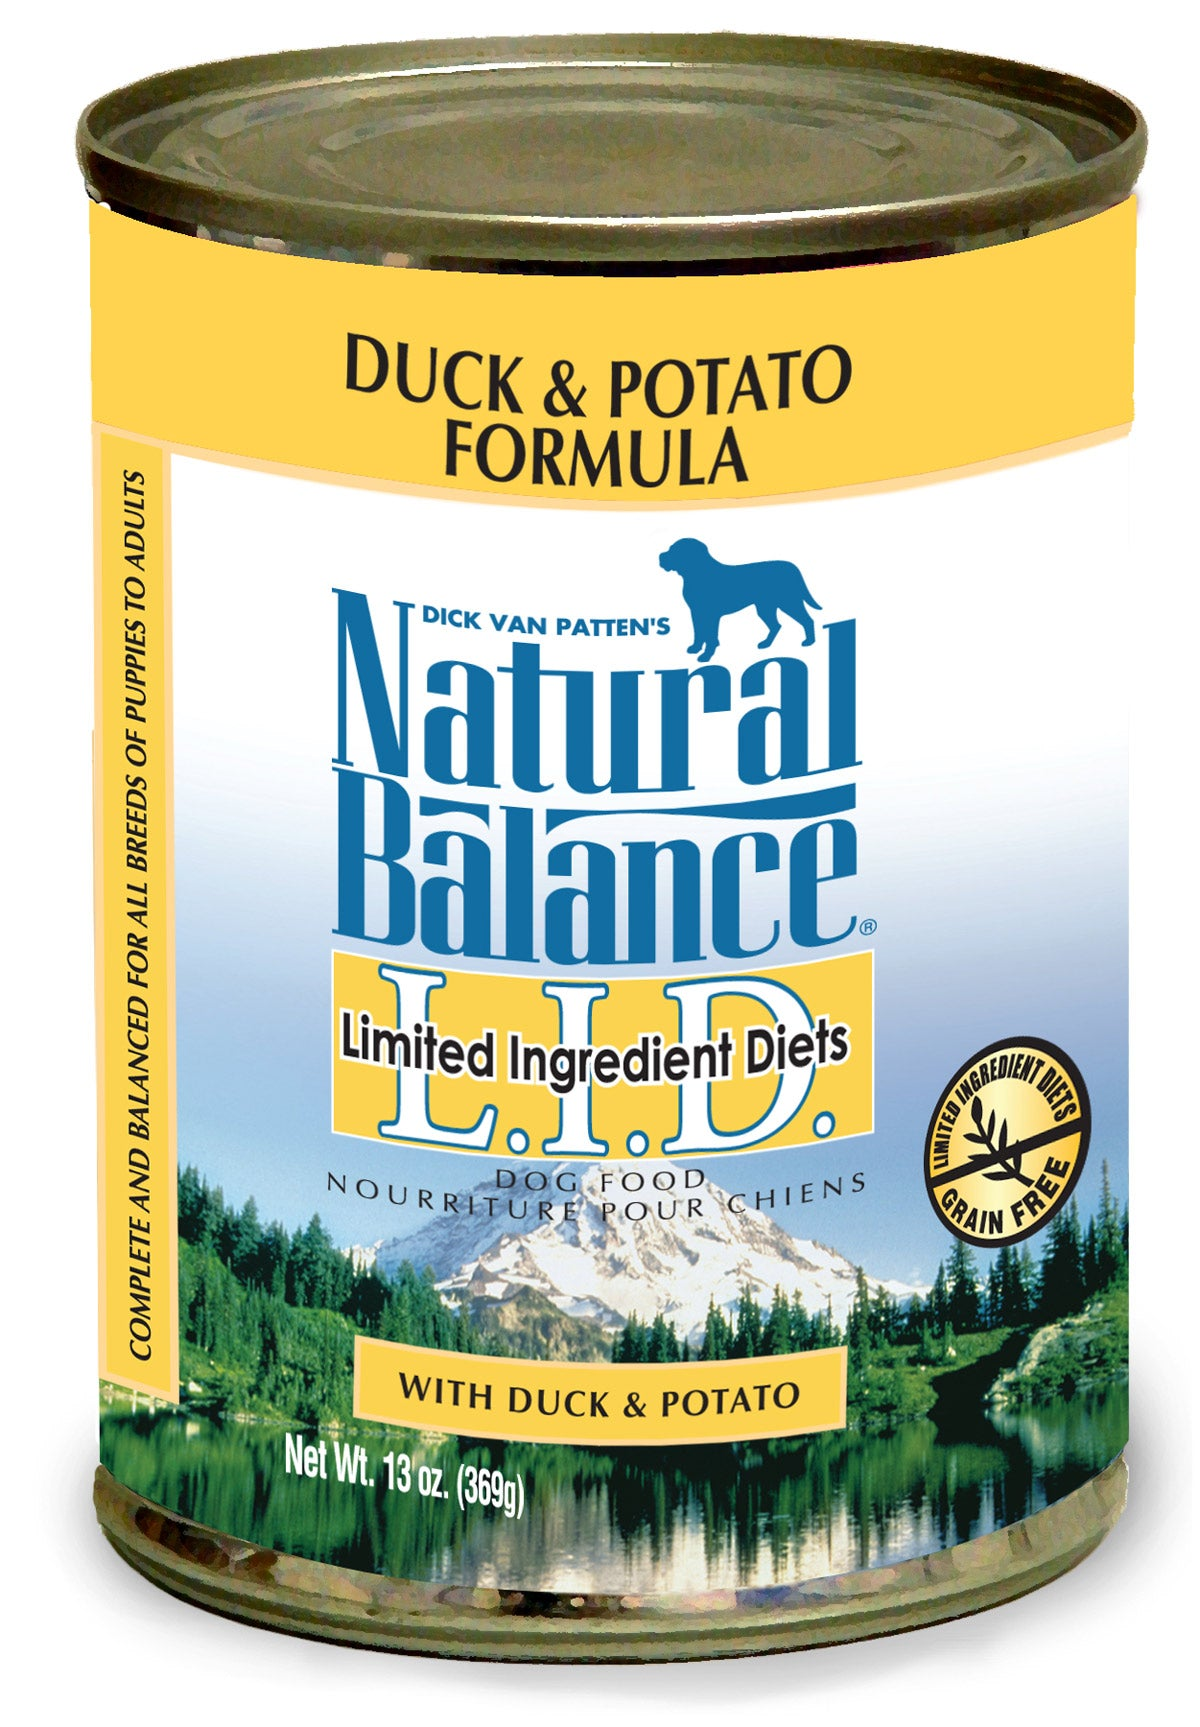 Natural Balance LID Duck & Potato Canned Wet Dog Food 6-oz at NJPetSupply.com